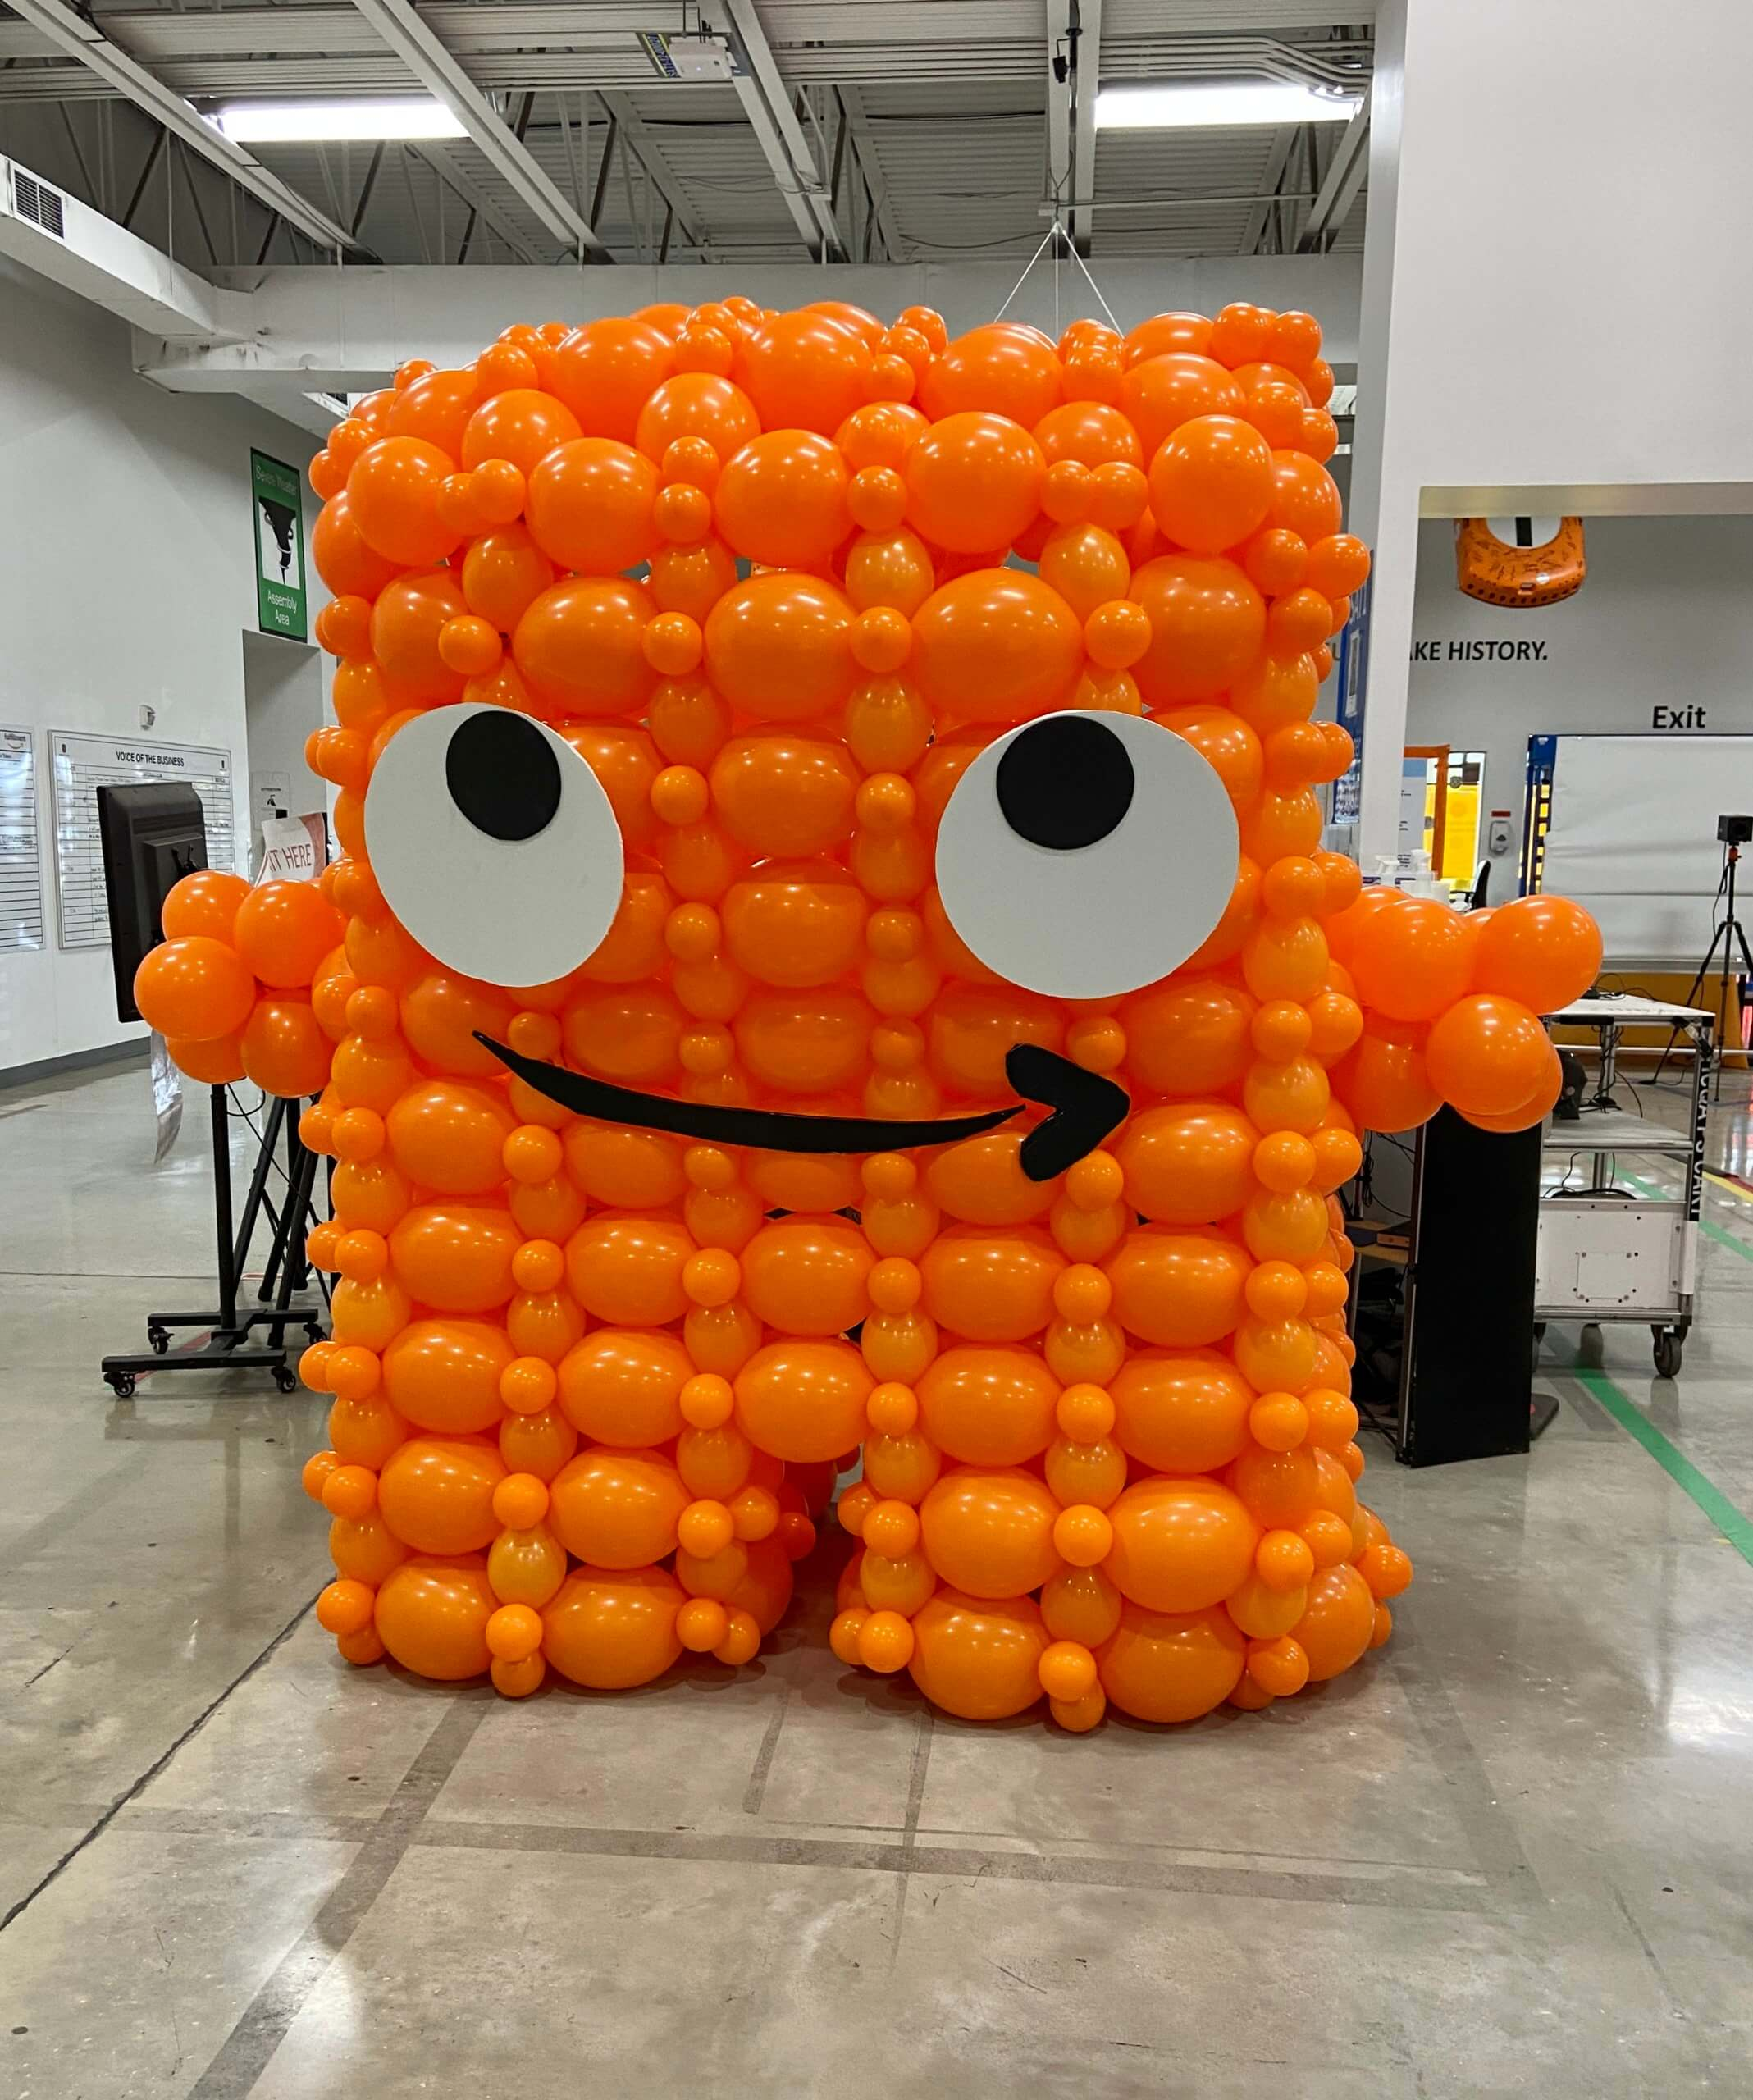 Balloon version of Amazon.com mascot